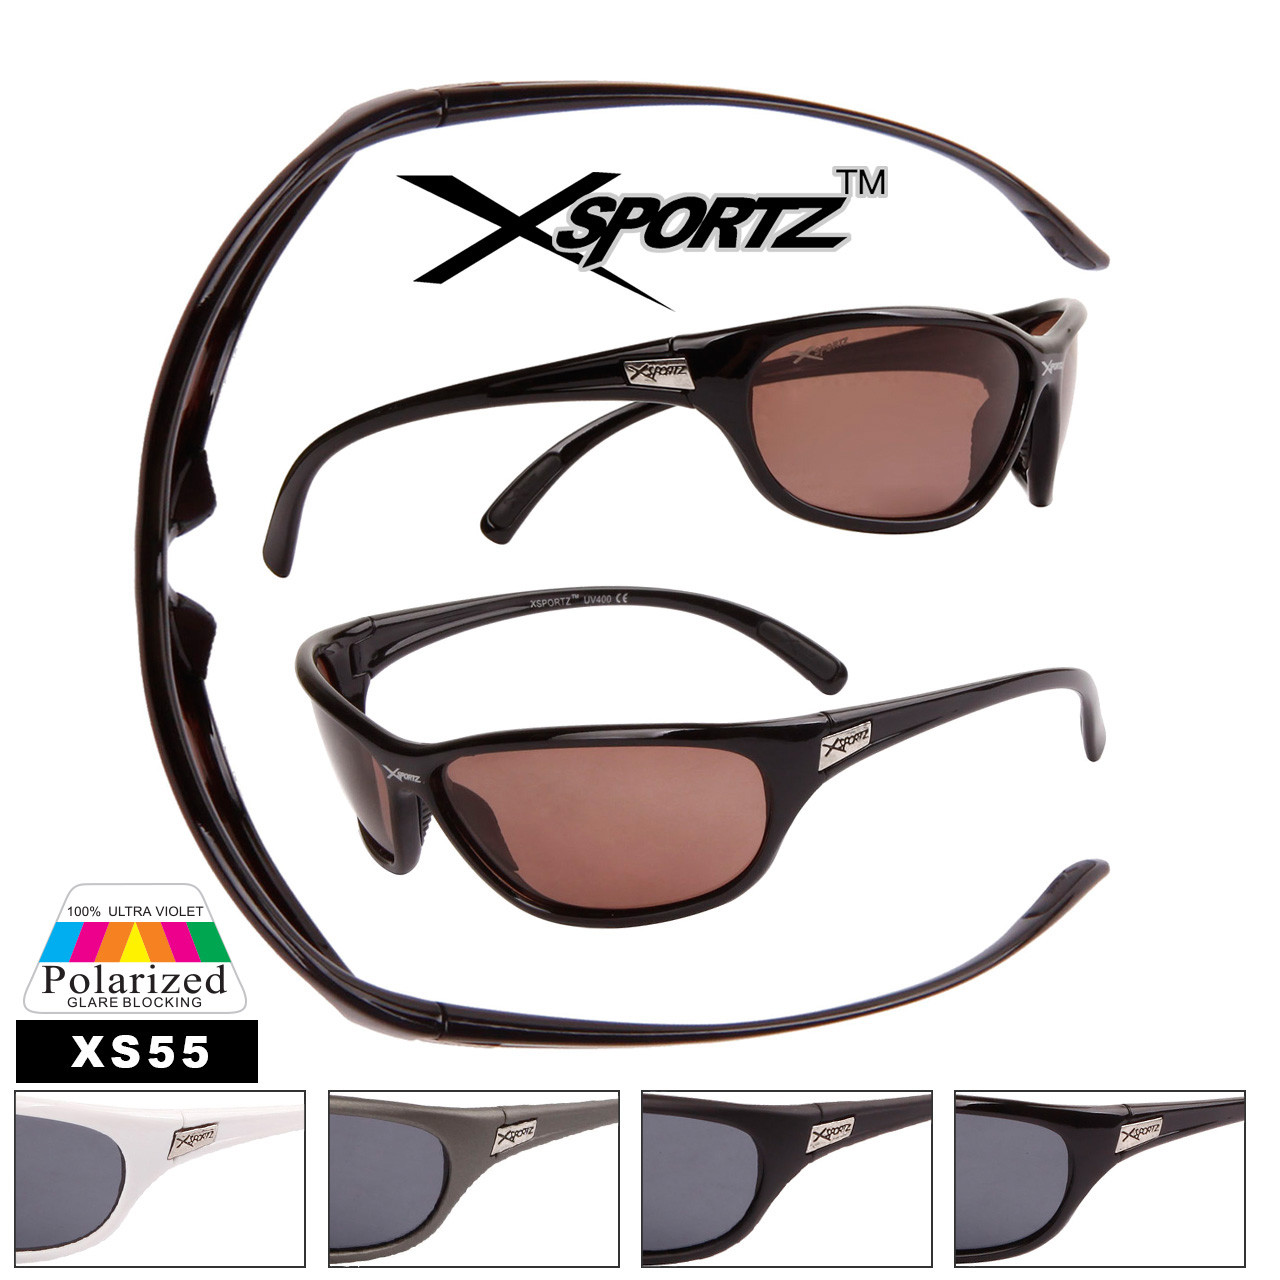 Full Wrap Around Frame Polarized Sunglasses - Style #XS55